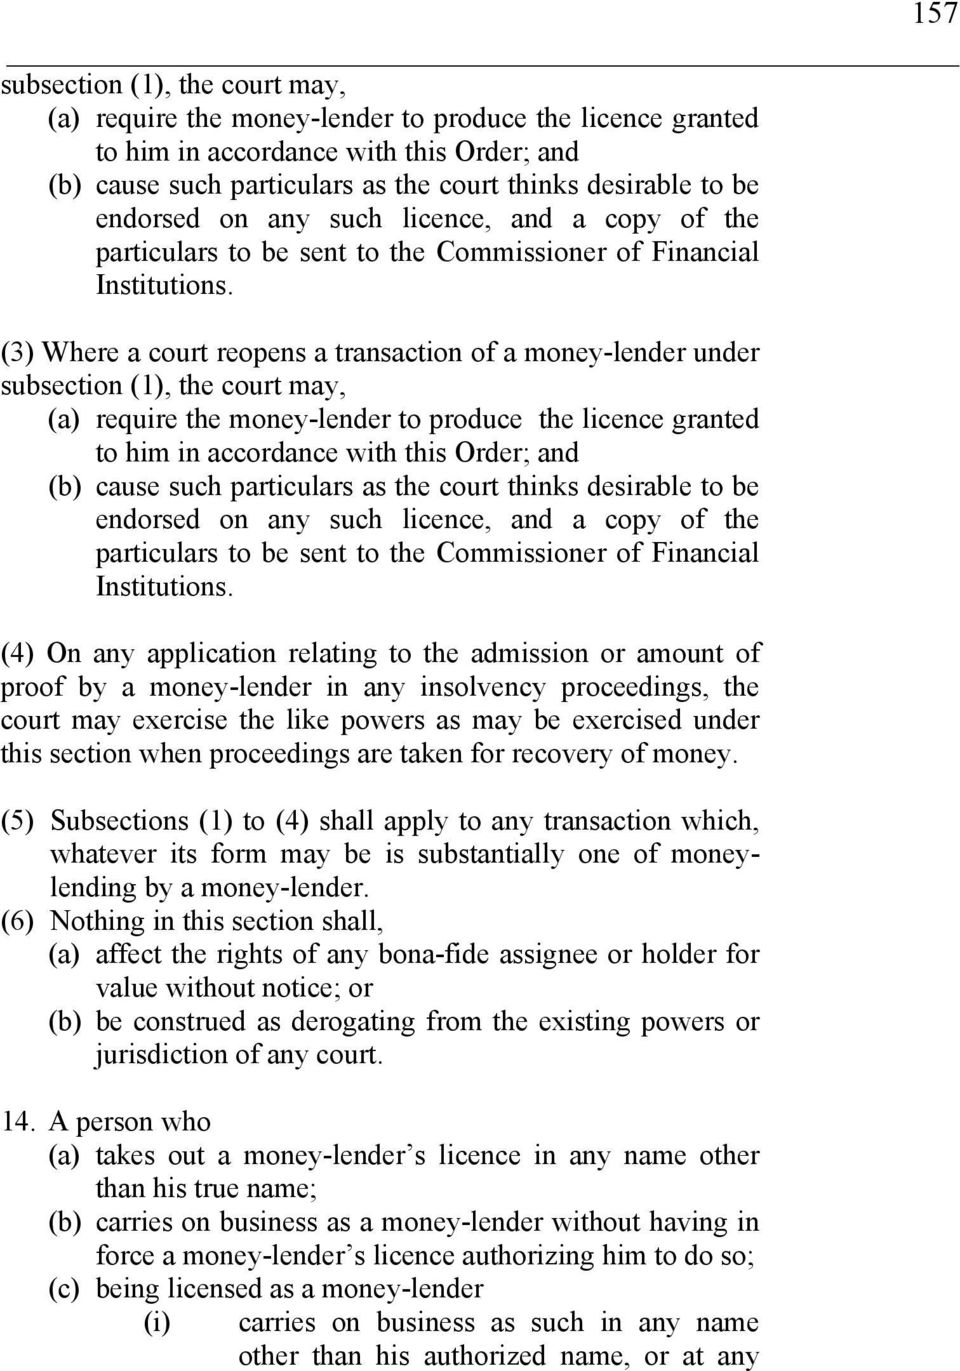 (3) Where a court reopens a transaction of a money-lender under subsection (1), the court may, (a) require the money-lender to produce the licence granted to him in accordance with this Order; and